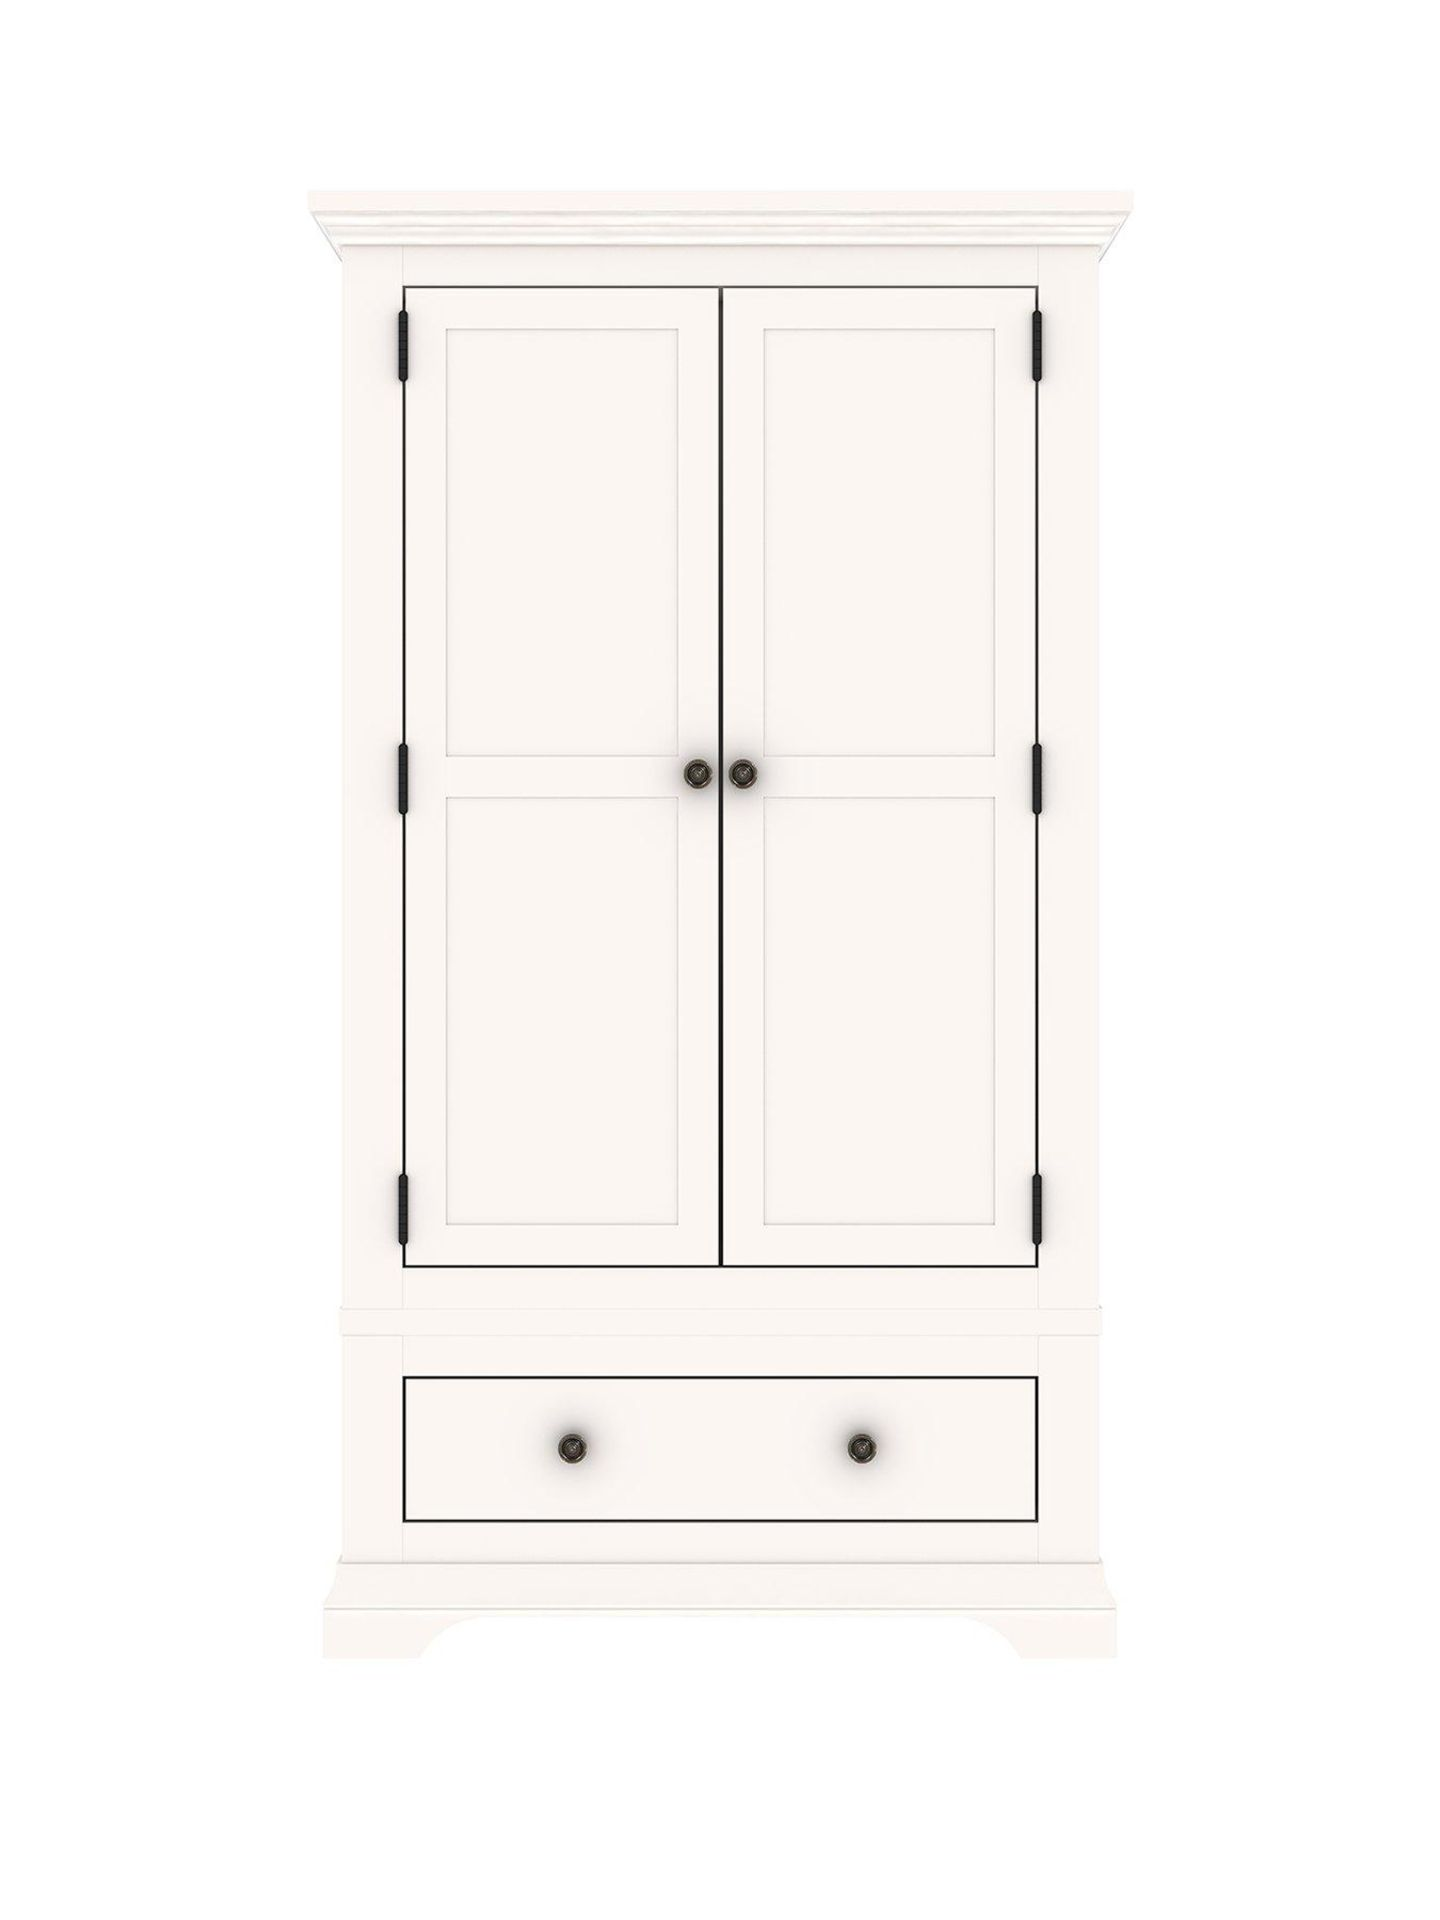 Lot 12 - Boxed Item Ideal Home Normandy 2 Doors 1 Drawers Solid Oak Wardrobe [White] 193X112X58Cm